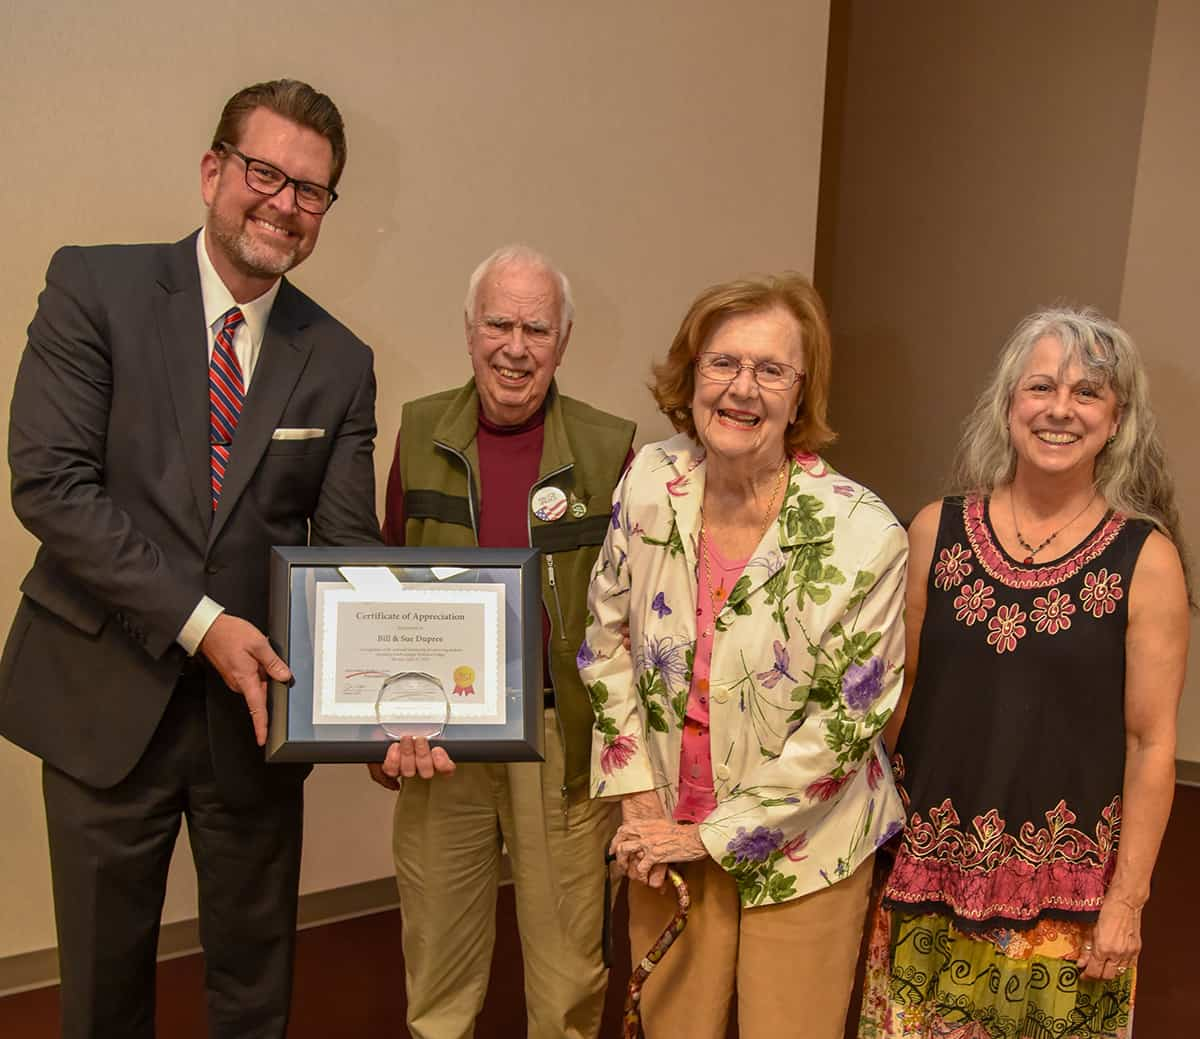 Rev. Bill and Sue Dupree endowed their third endowed scholarship at South Georgia Technical College and Dr. John Watford is shown above with the Dupree's and their daughter Mary Lynn.